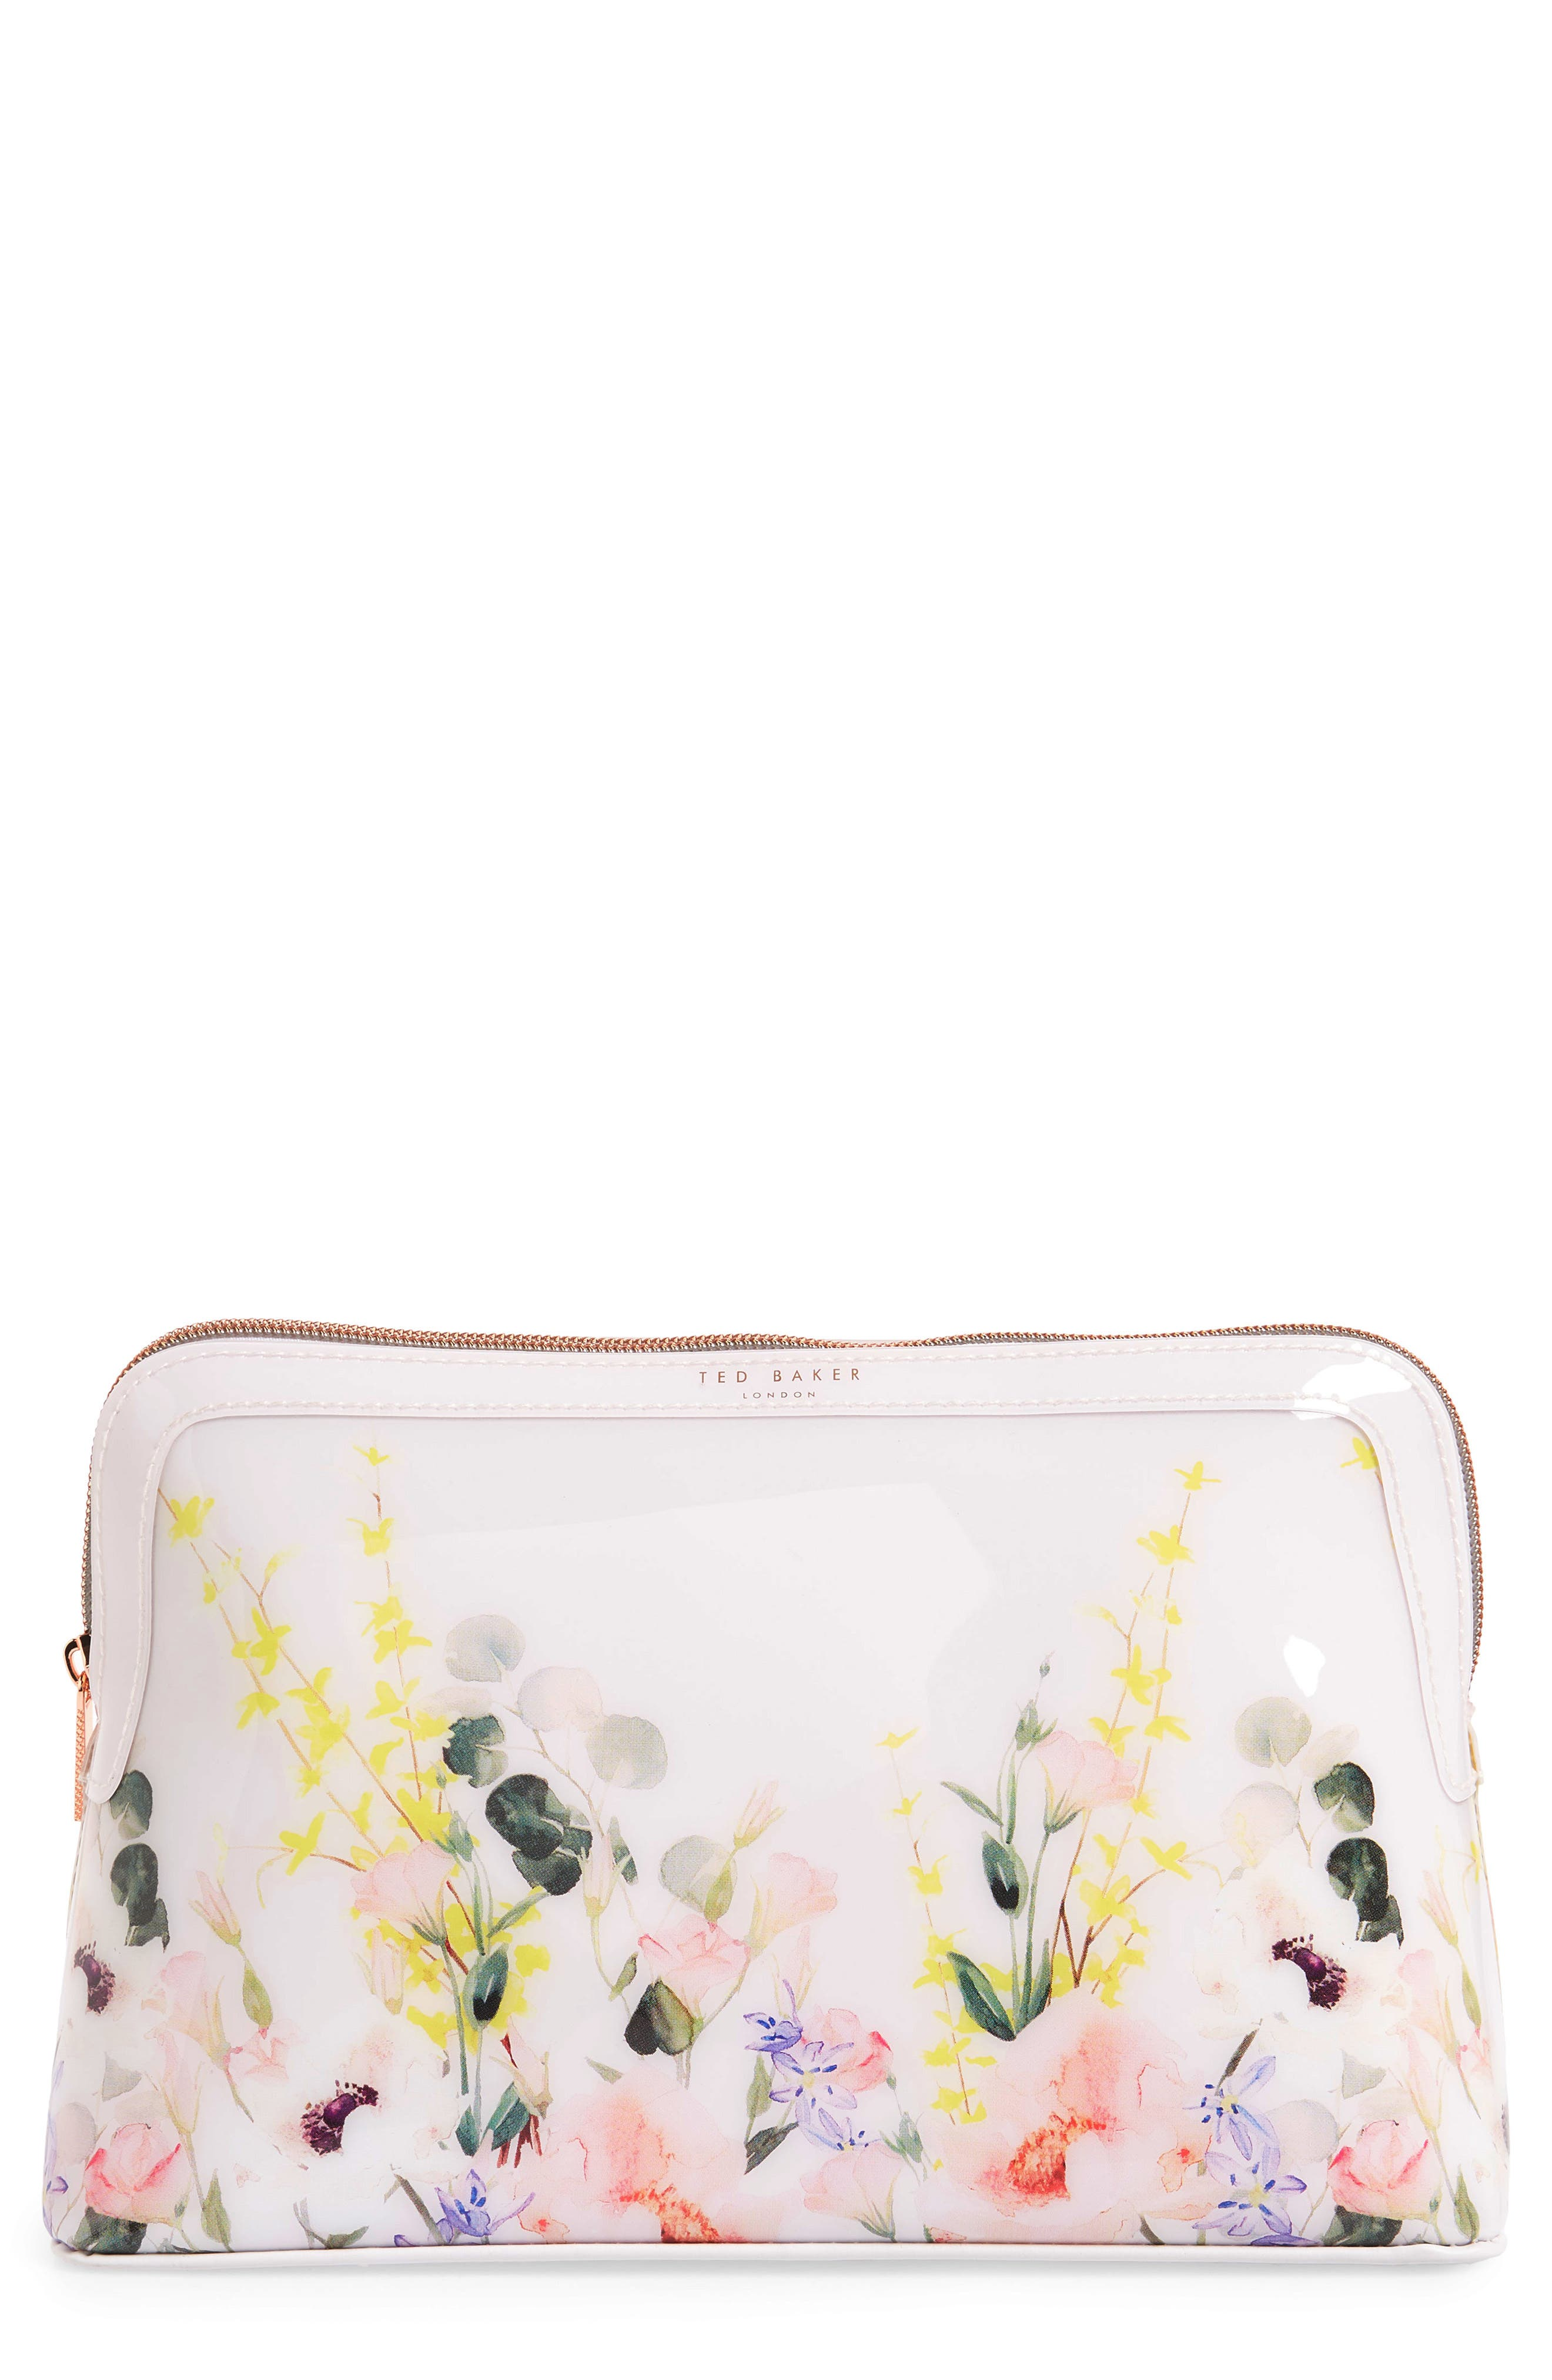 TED BAKER LONDON,                             Sybill Print Large Cosmetics Case,                             Main thumbnail 1, color,                             NUDE PINK